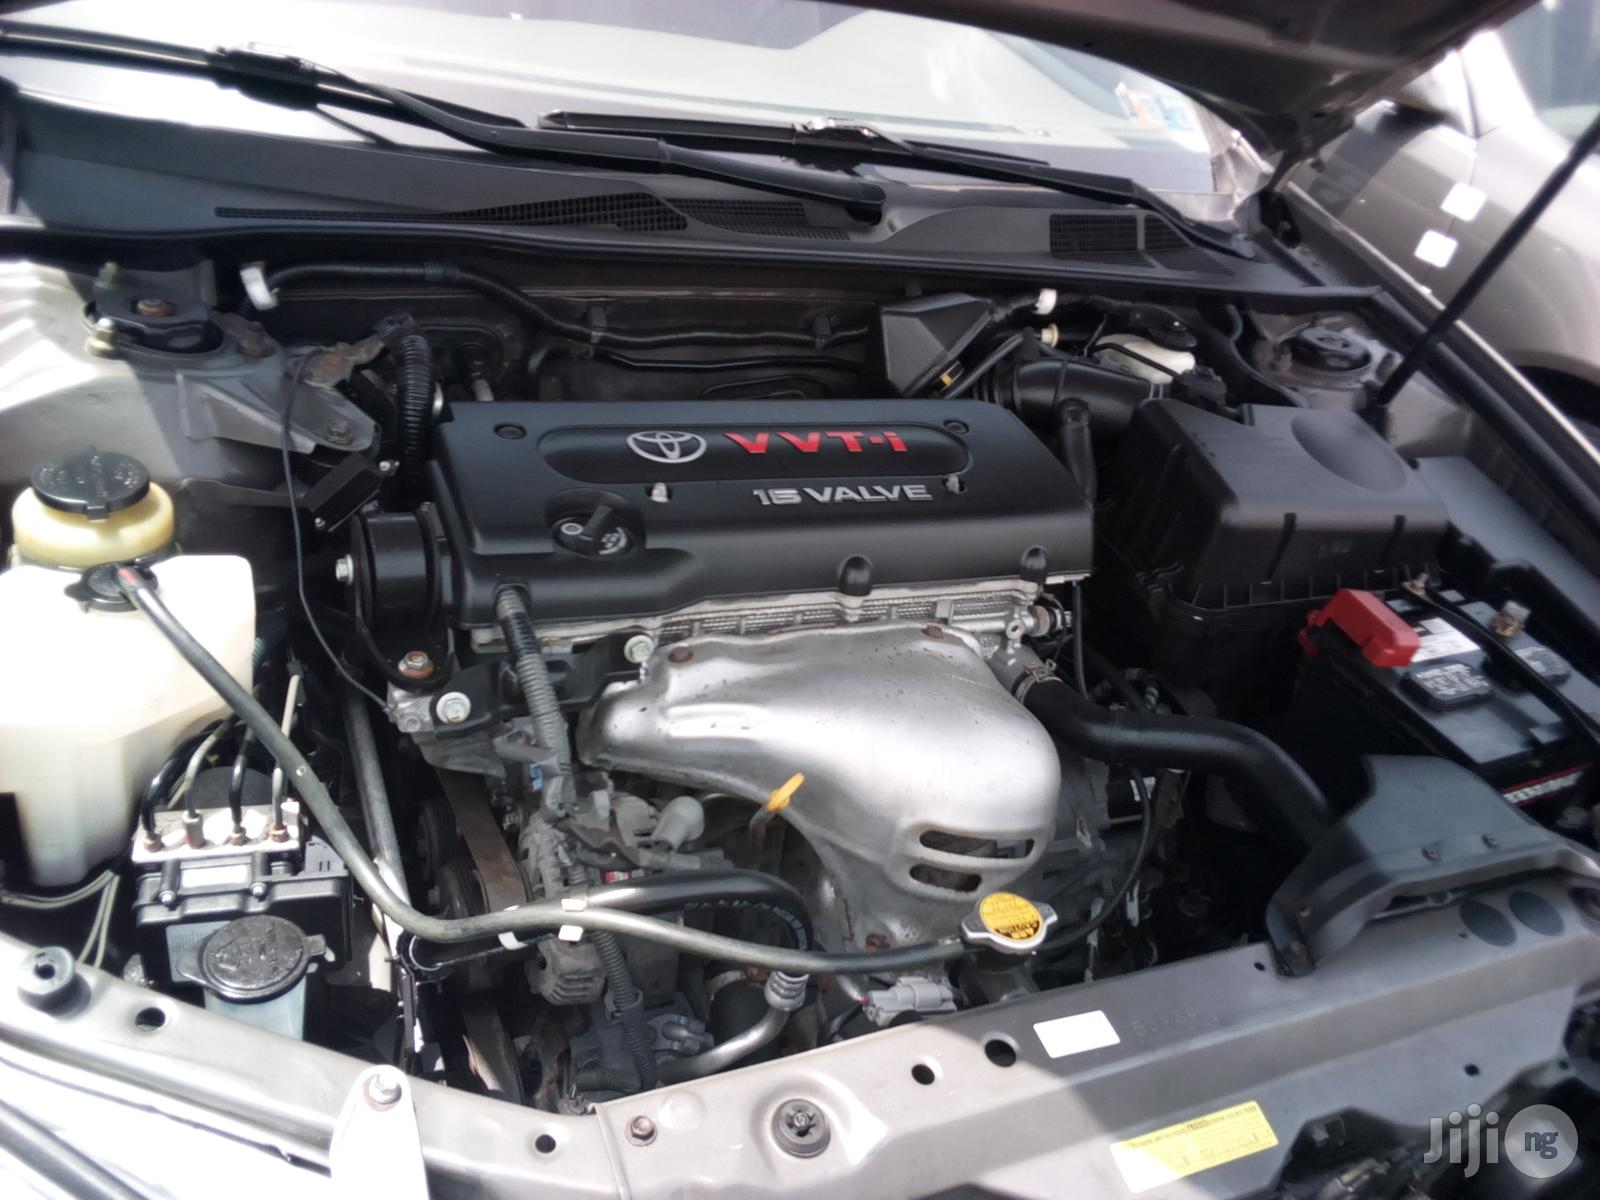 Toyota Camry 2006 Gray   Cars for sale in Apapa, Lagos State, Nigeria